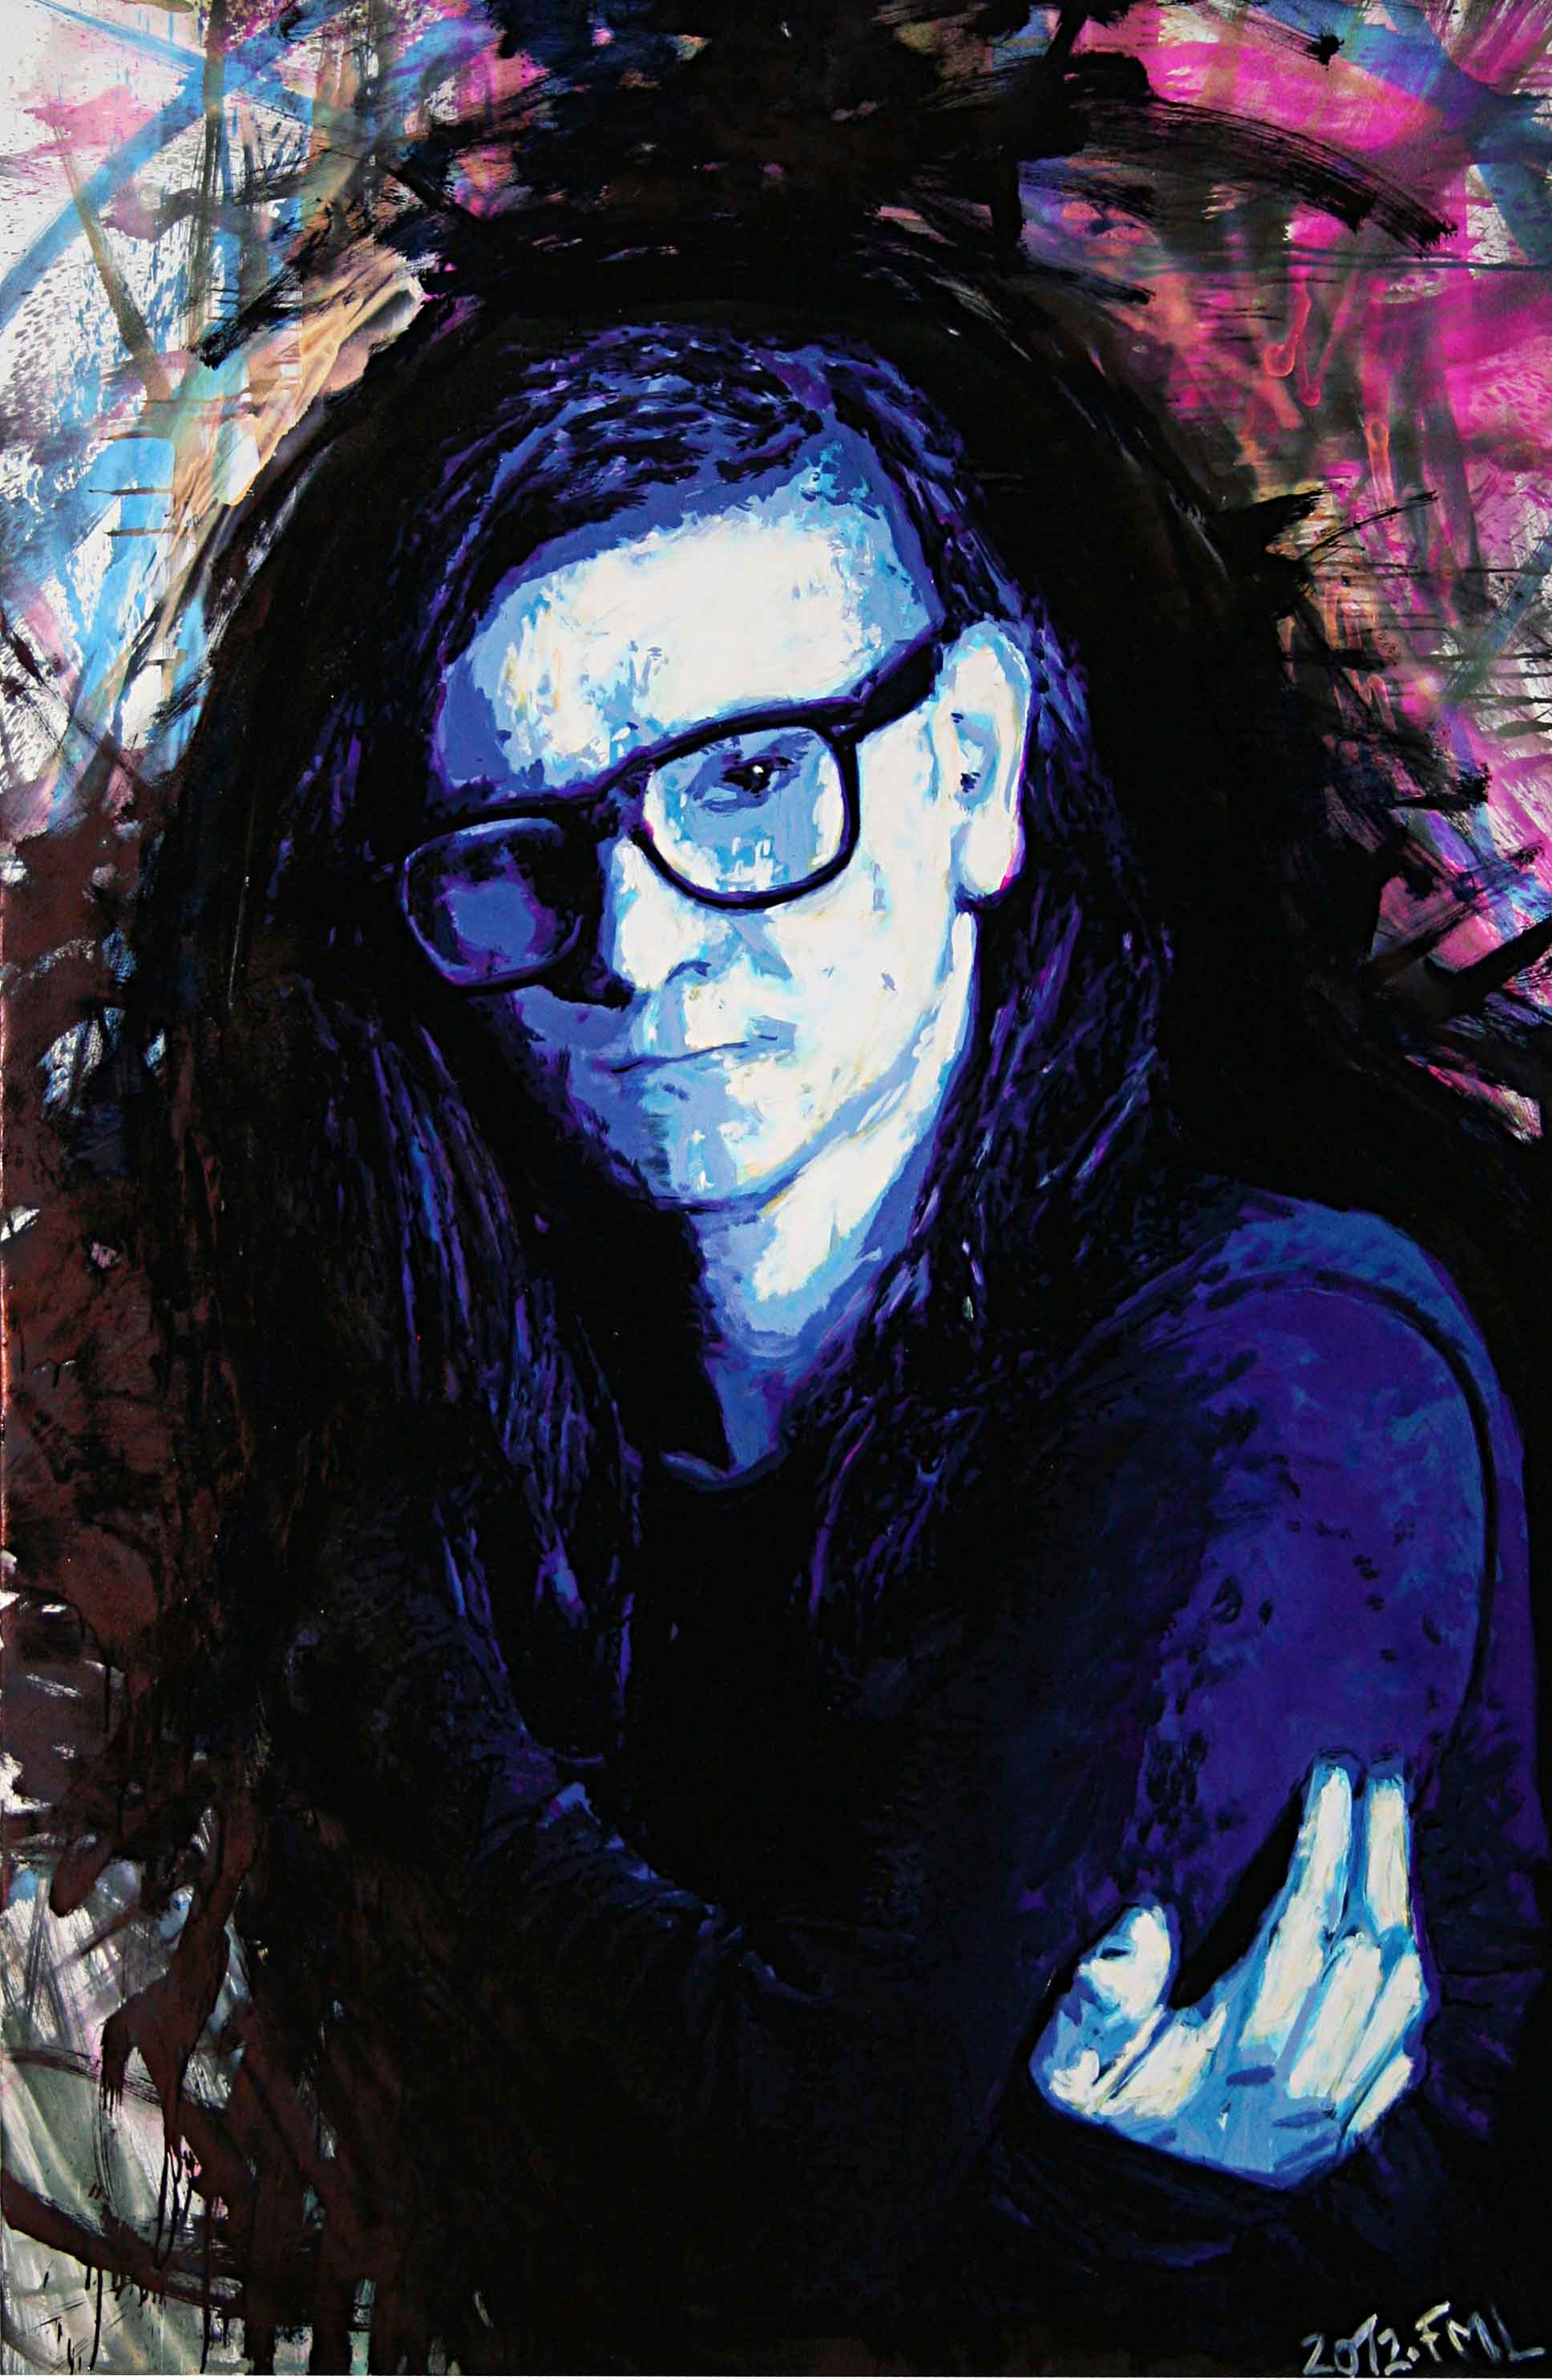 Best Hd Wallpaper For Android Mobile Skrillex Wallpapers High Quality Download Free